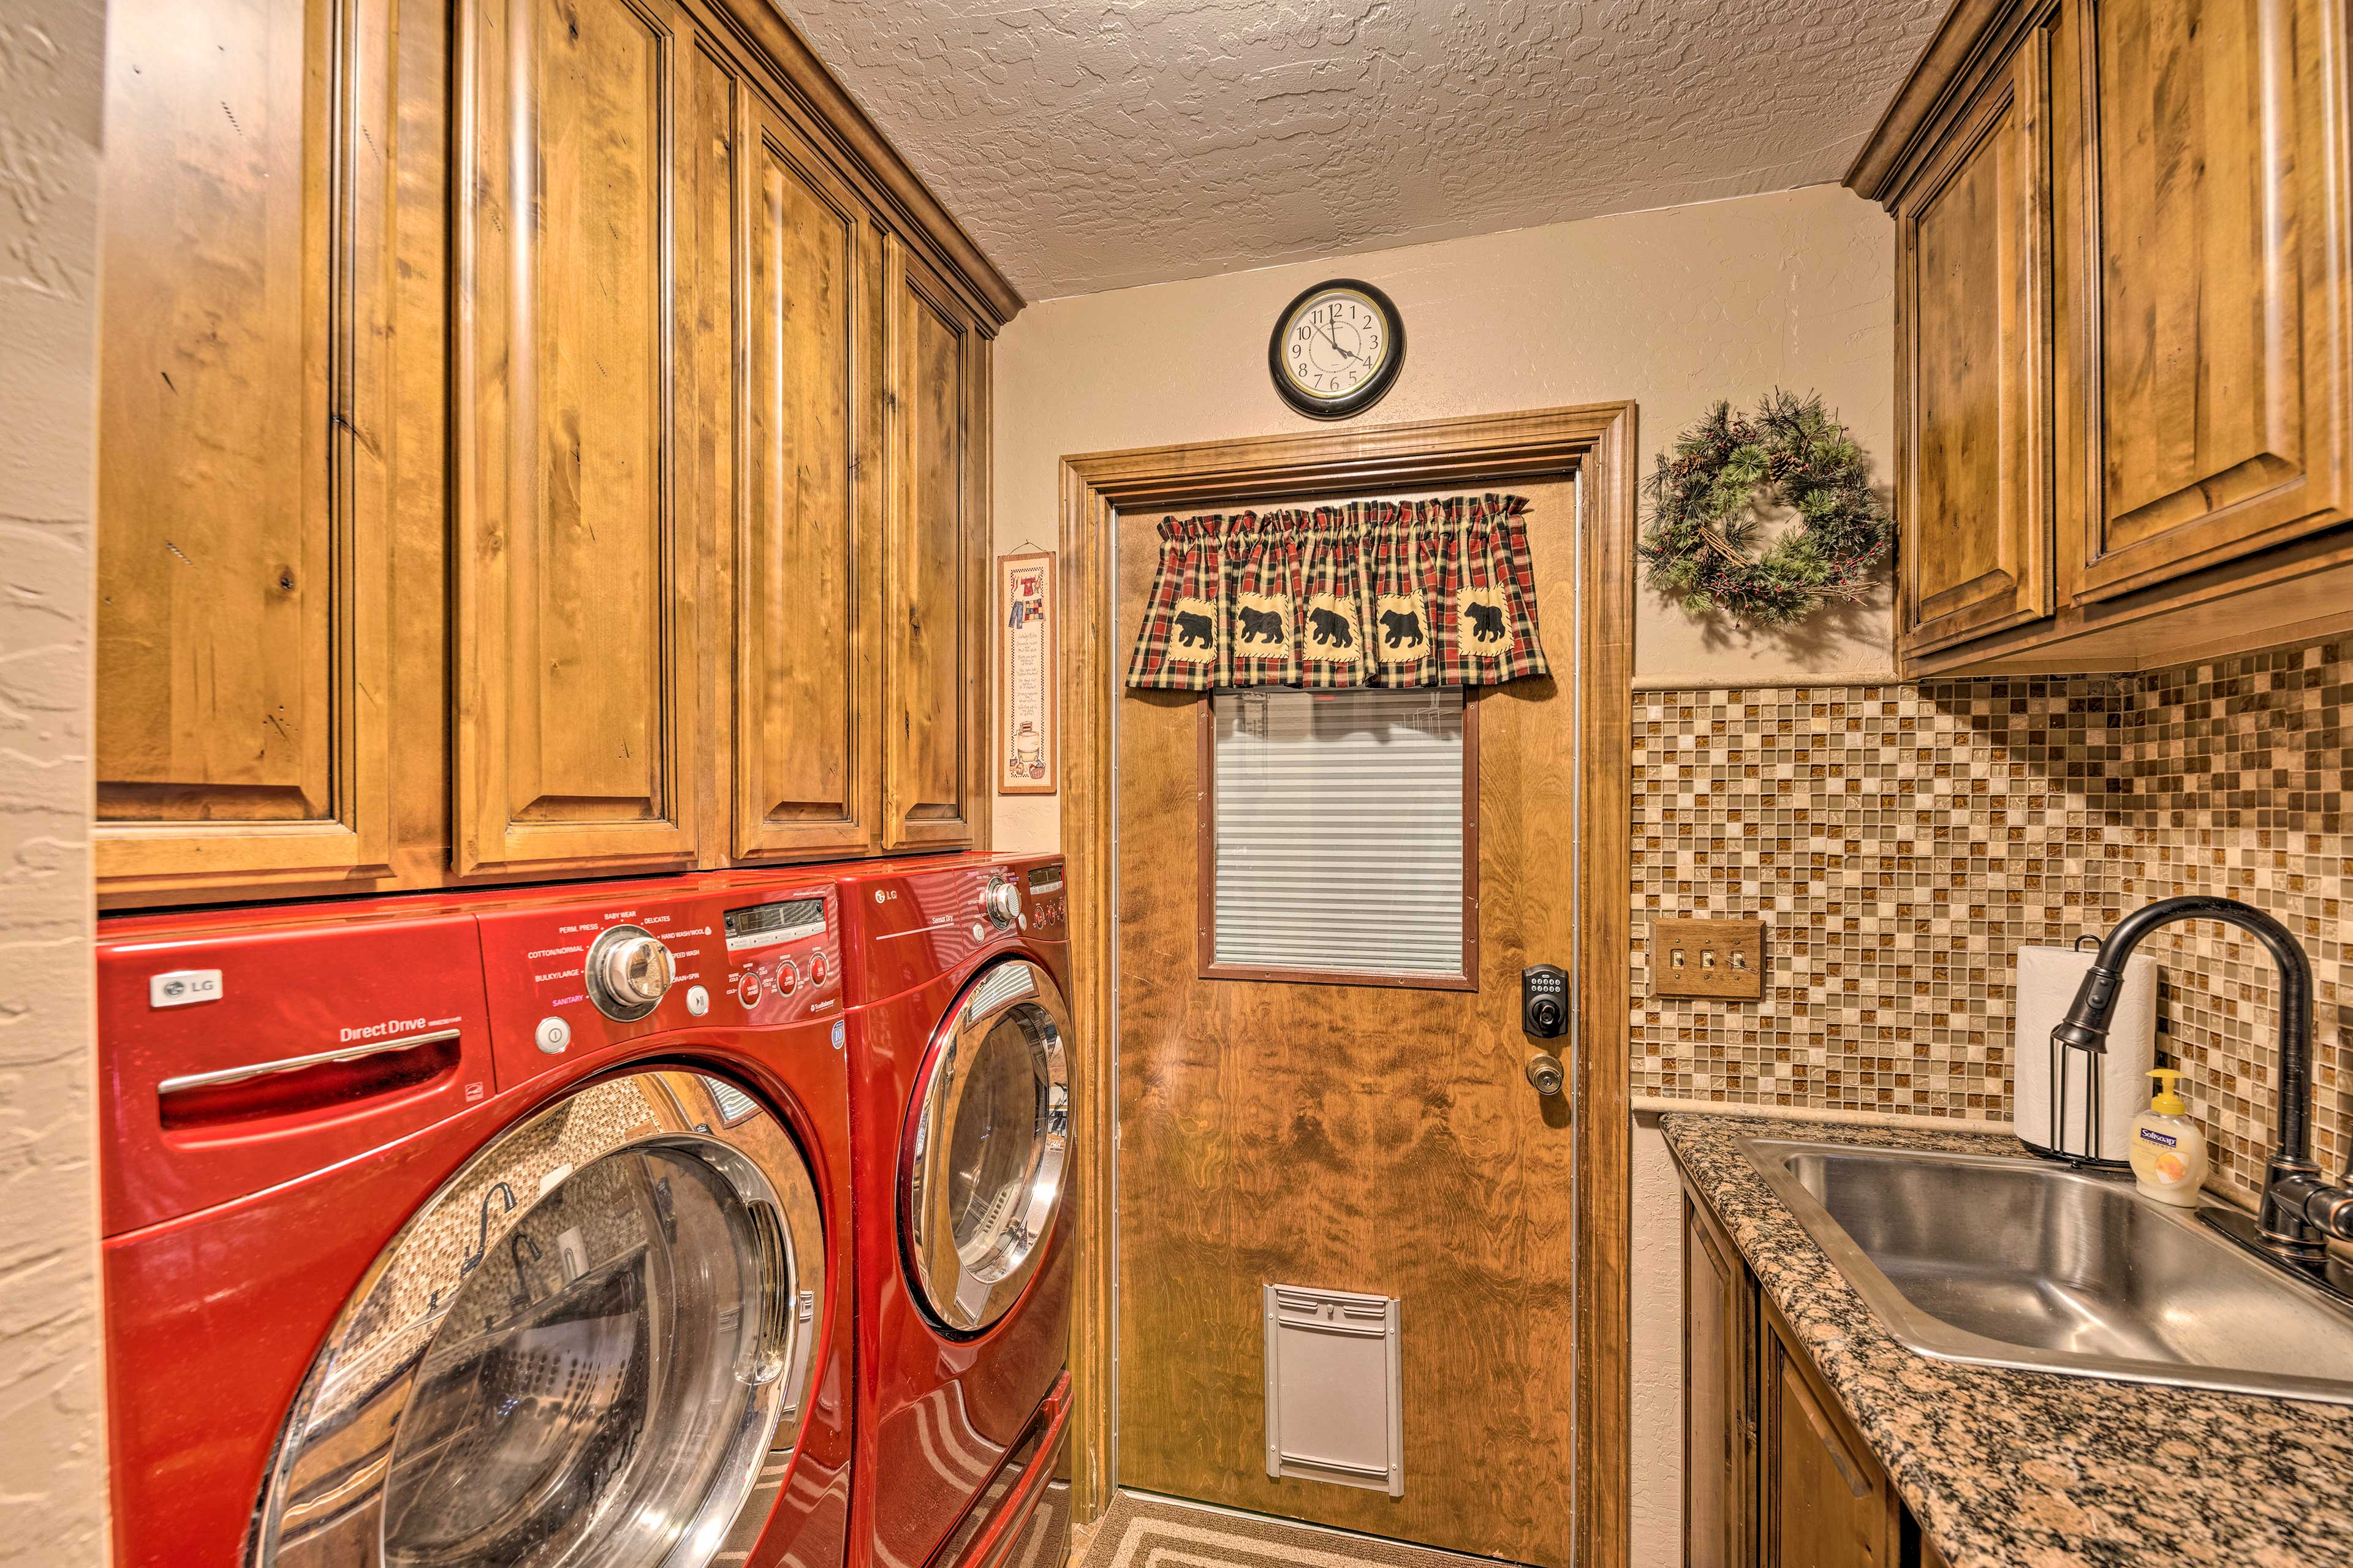 Throw in a load of laundry during your stay.